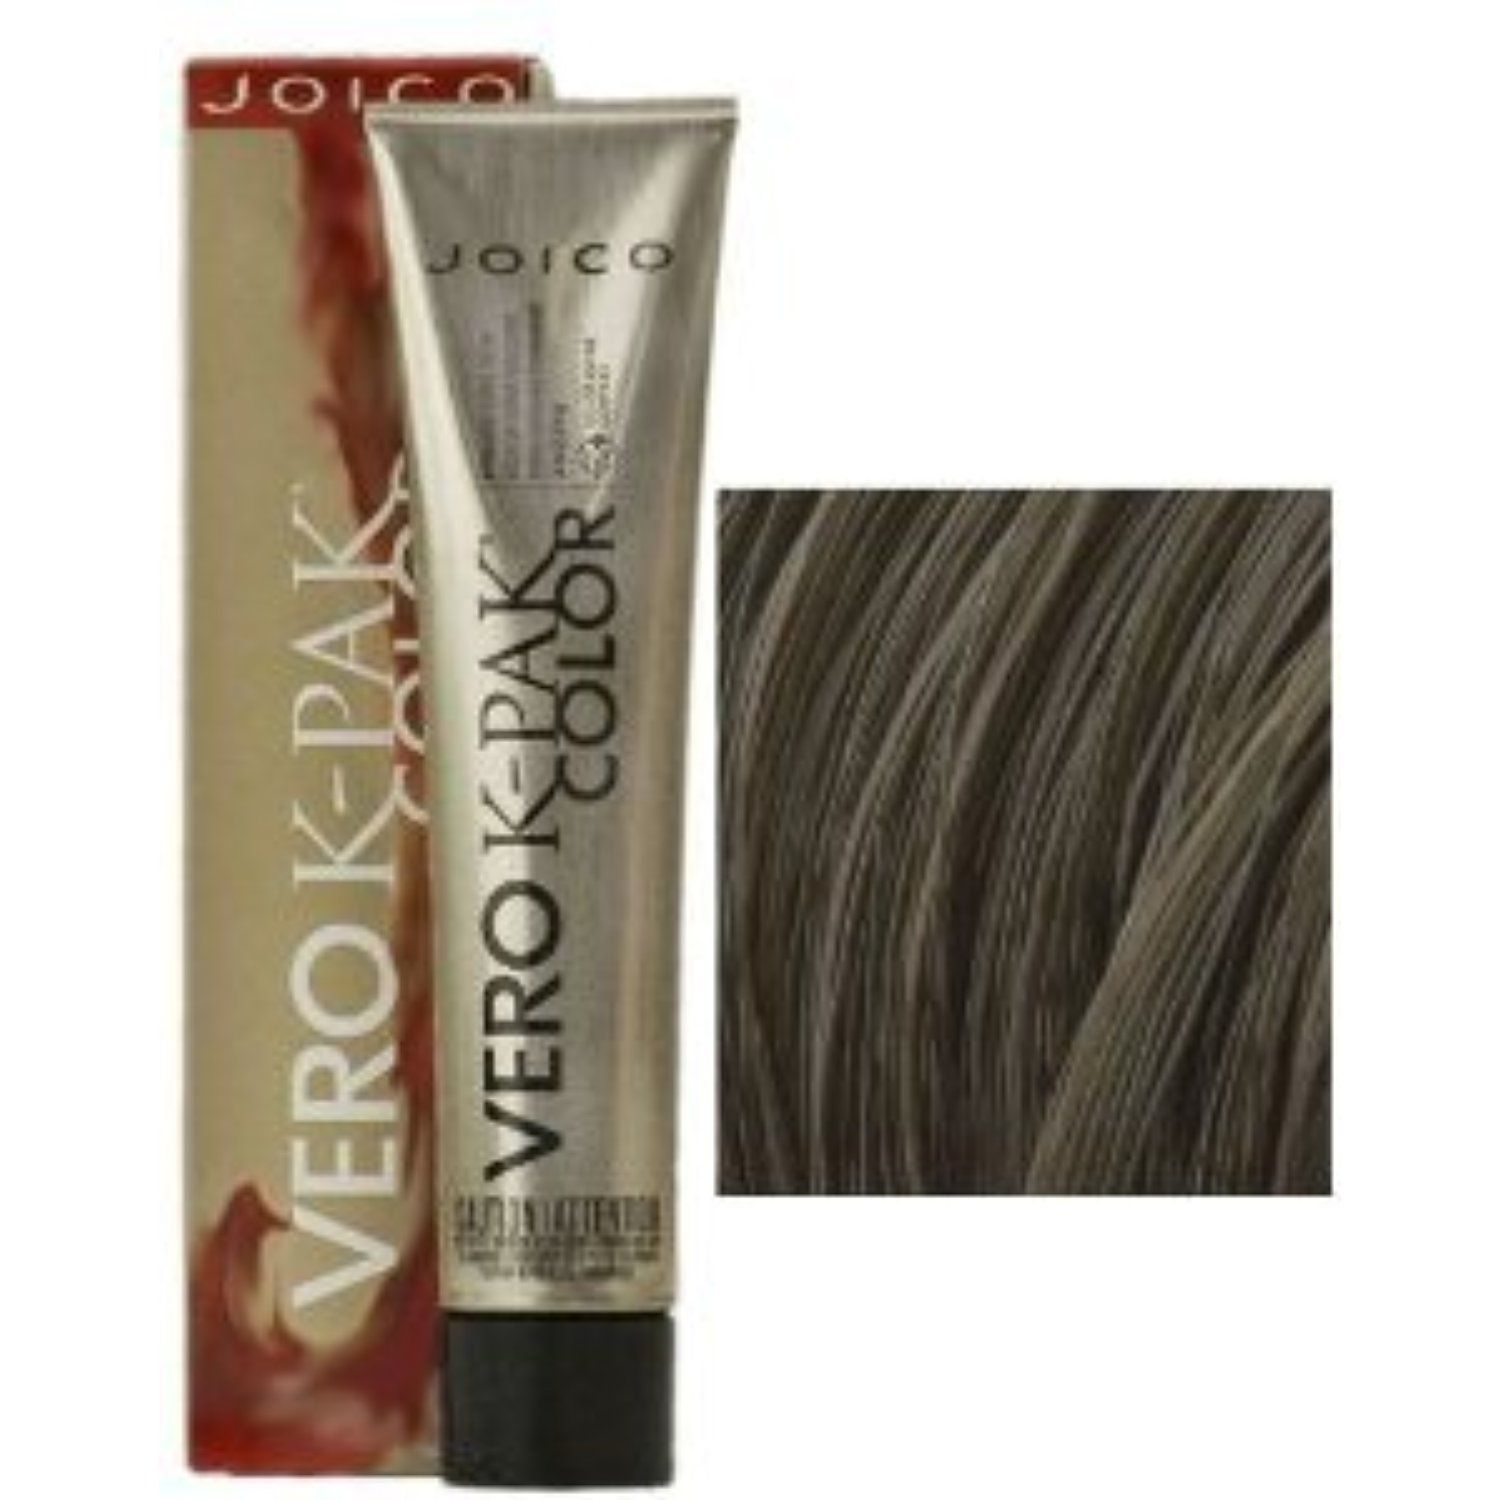 Joico Vero K Pak Hair Color 6a Visit The Image Link More Details This Is An Affiliate Link Personalcare Hair Color Joico Joico Color